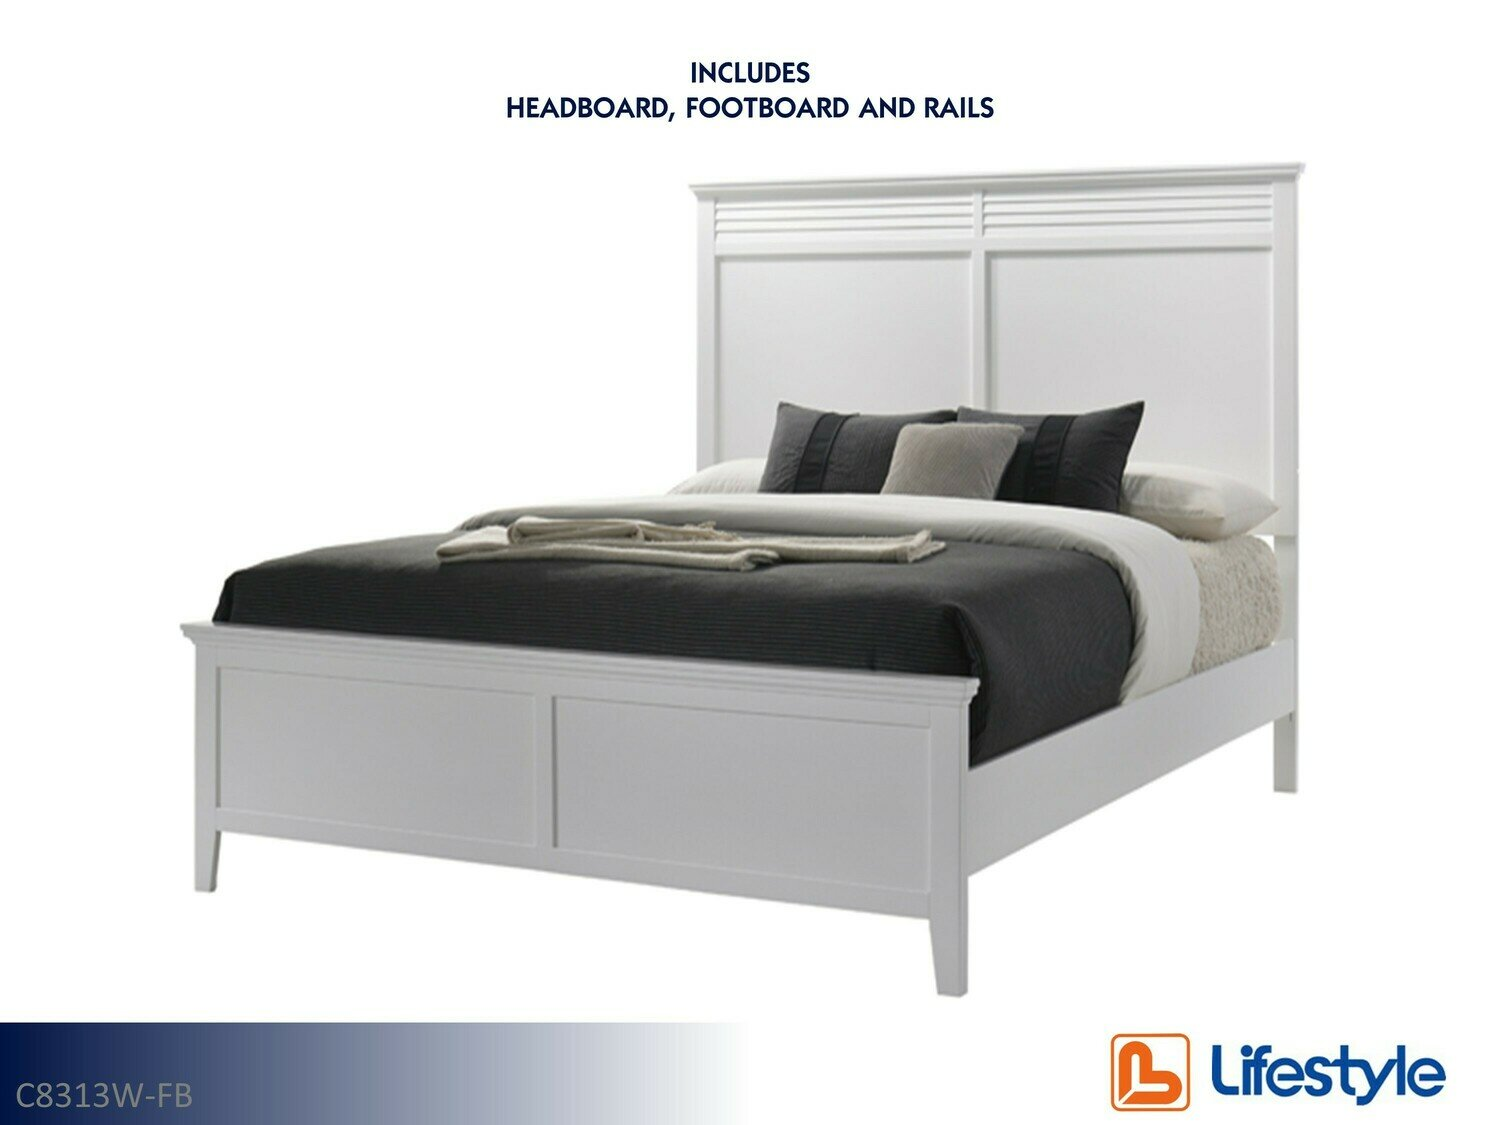 Cottage Bay White Bed with Headboard Footboard Rails by Lifestyle